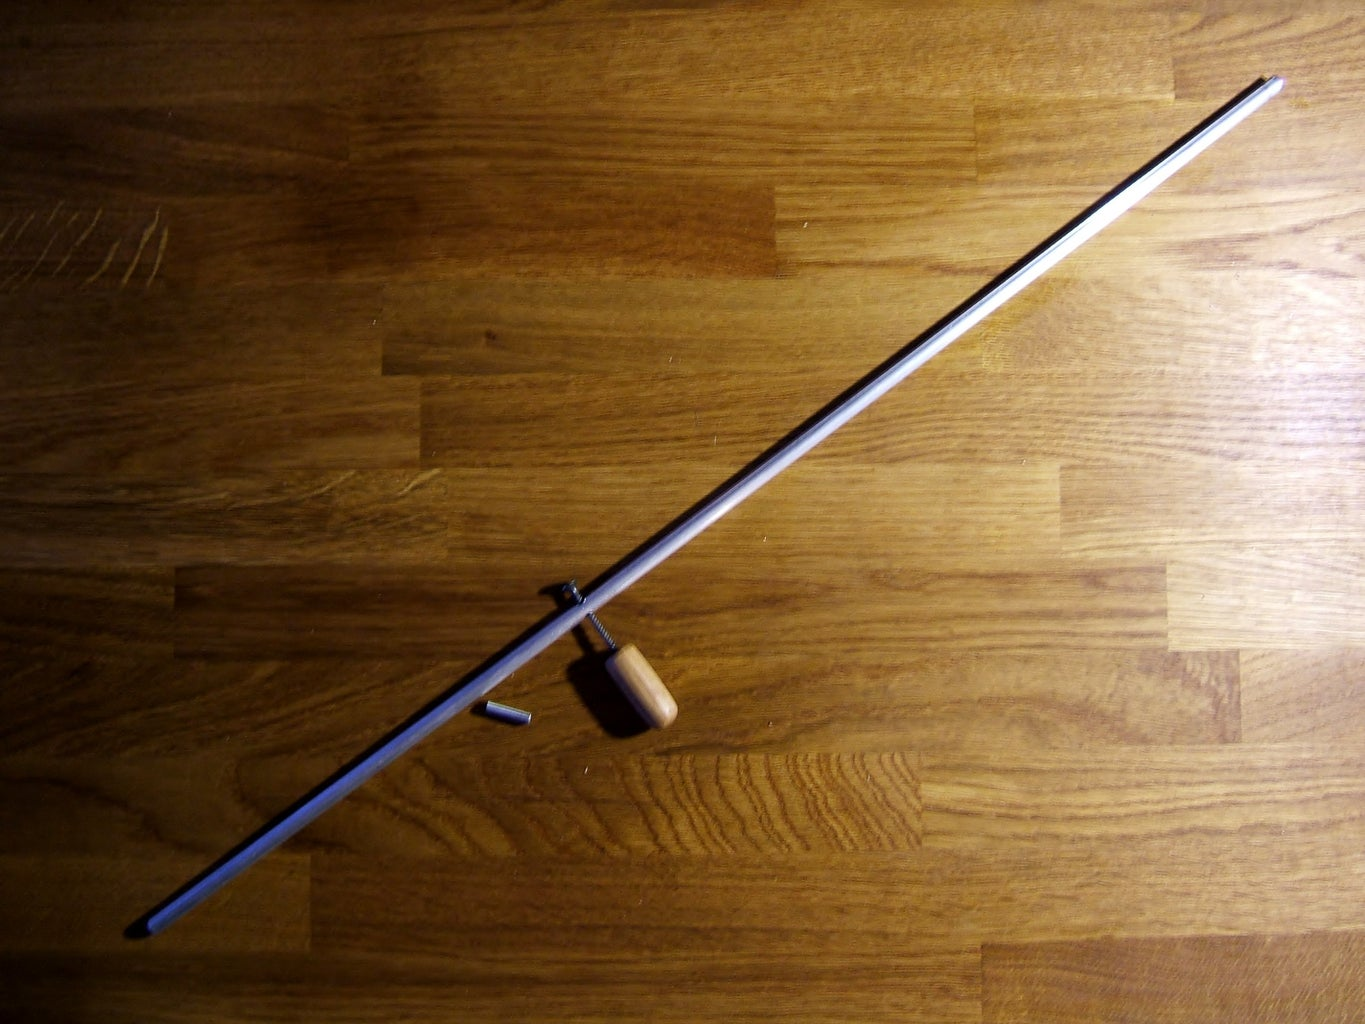 The Trigger Rod